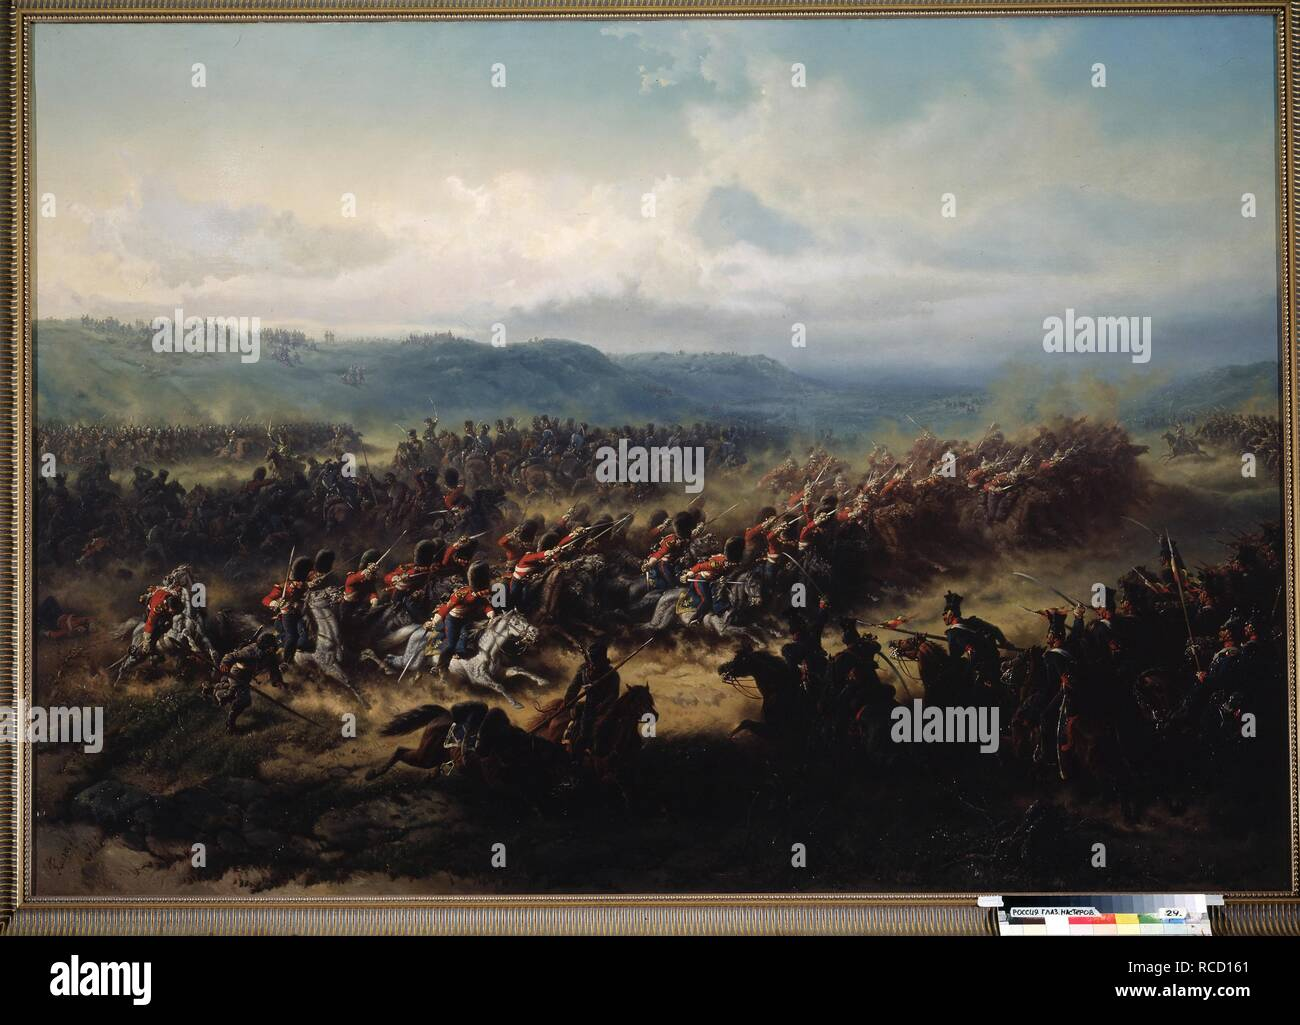 The Charge of the Light Brigade during the Battle of Balaclava. Museum: PRIVATE COLLECTION. Author: KAISER, FRIEDRICH. - Stock Image